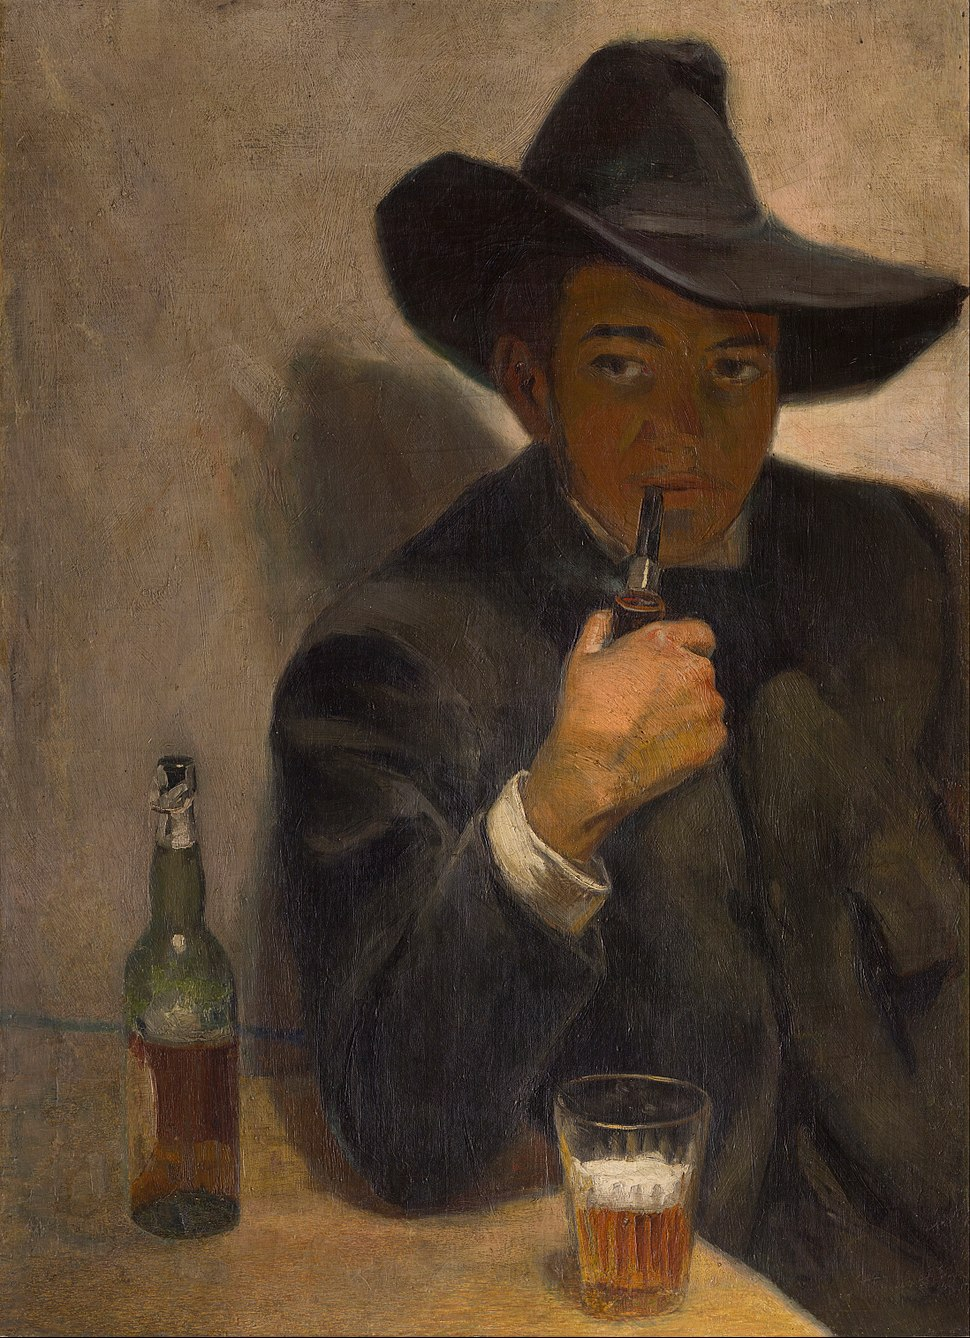 Diego Rivera - Self-portrait with Broad-Brimmed Hat - Google Art Project